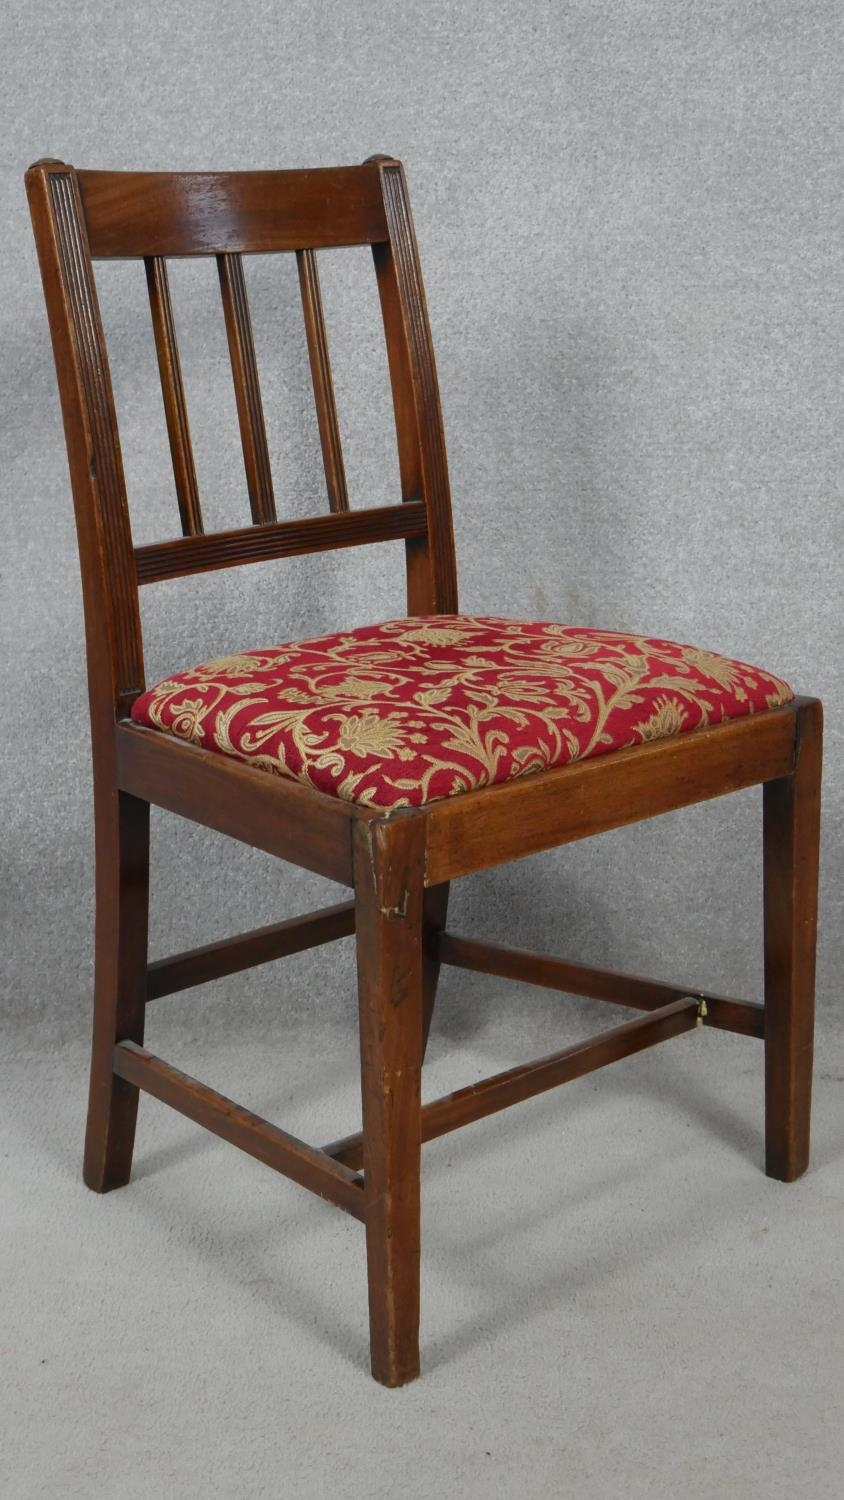 A set of six 19th century mahogany bar back dining chairs with reeded slats above drop in seats on - Image 3 of 4